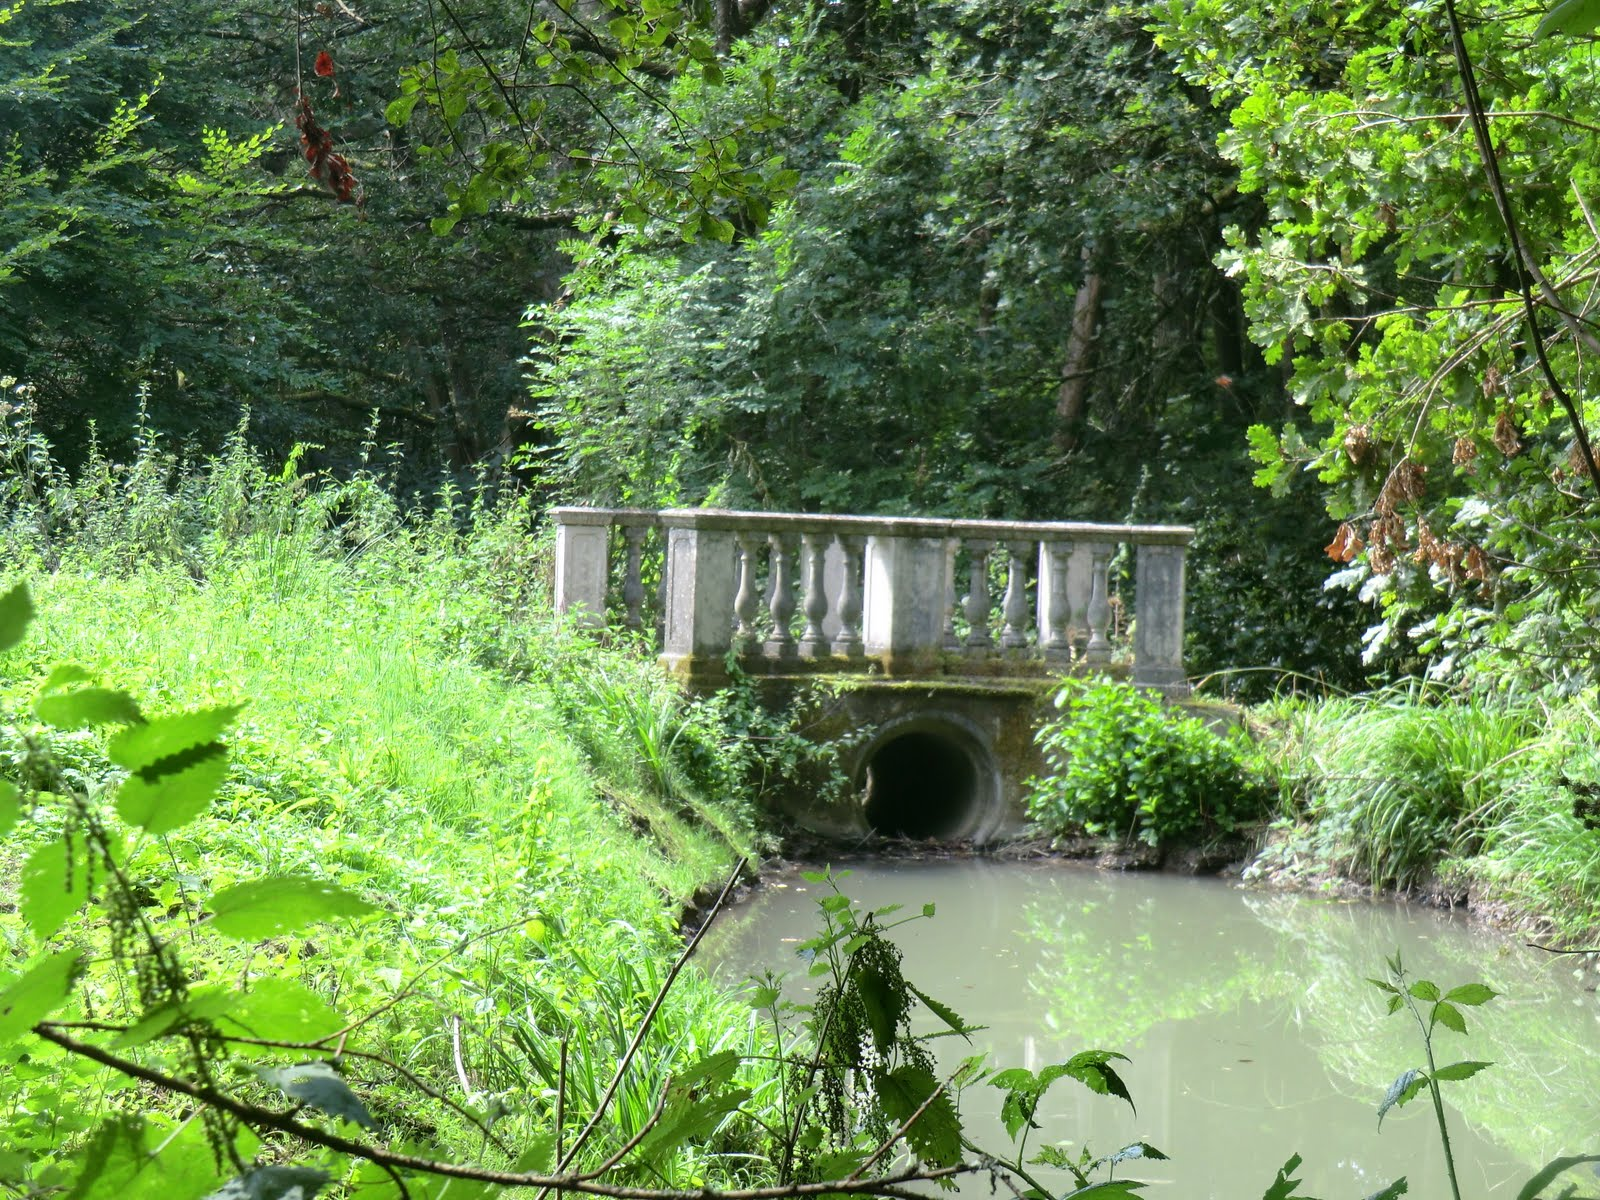 CIMG3457 Ornamental bridge, Cuckfield Park